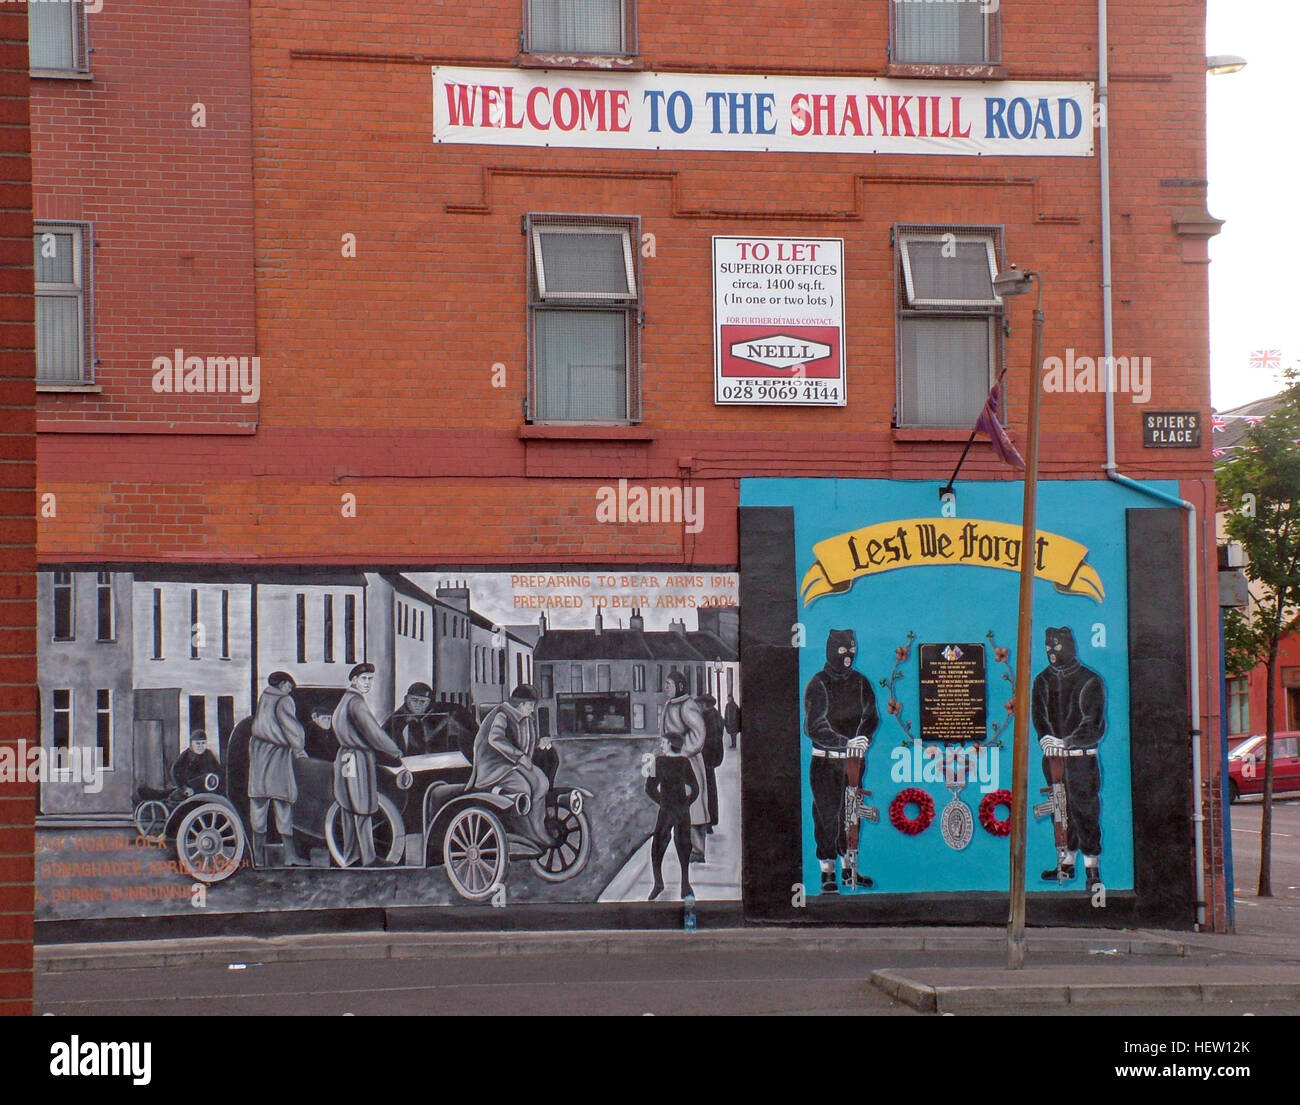 Unionist,British,Shankil,rd,painting,art,artist,martyr,fighter,para,paramilitary,soldier,wall,gable,end,gable end,community,protestant,Shankill Road Mural,West,West Belfast,NI,Northern Ireland,brick,GoTonySmith,@HotpixUK,Tony,Smith,UK,GB,Great,Britain,United,Kingdom,Irish,British,Ireland,problem,with,problem with,issue with,NI,Northern,Northern Ireland,Belfast,City,Centre,Art,Artists,the,troubles,The Troubles,Good Friday Agreement,Peace,honour,painting,wall,walls,tribute,unionism,Fight,Justice,West,Beal,feirste,martyrs,social,tour,tourism,tourists,urban,six,counties,6,backdrop,county,Antrim,DUP,democratic Unionist,red hand,of Ulster,Red Hand Of Ulster,Shankill,Rd,road,Shankill Road,streets of Belfast,protestant,religion,intolerance,prejudice,Buy Pictures of,Buy Images Of,Images of,Stock Images,Tony Smith,United Kingdom,Great Britain,British Isles